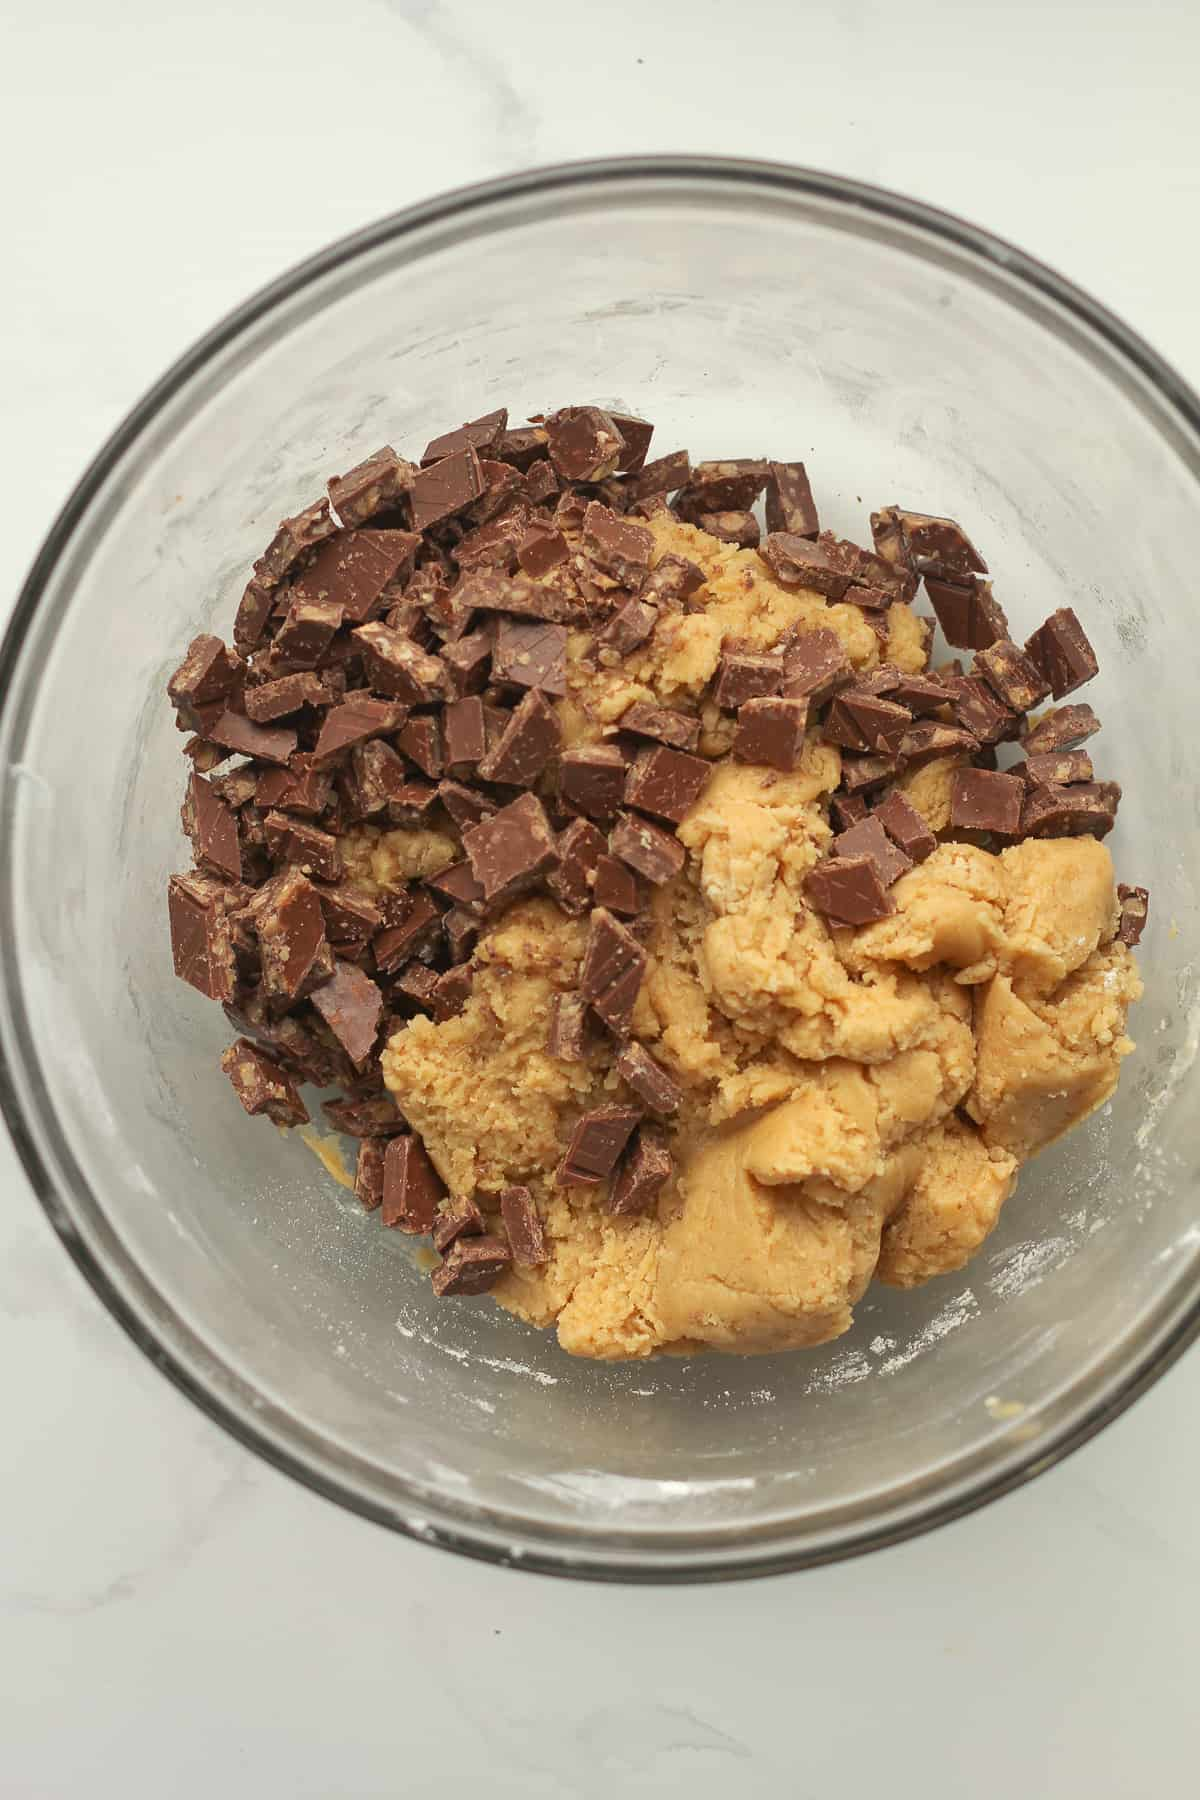 A bowl of the cookie dough.